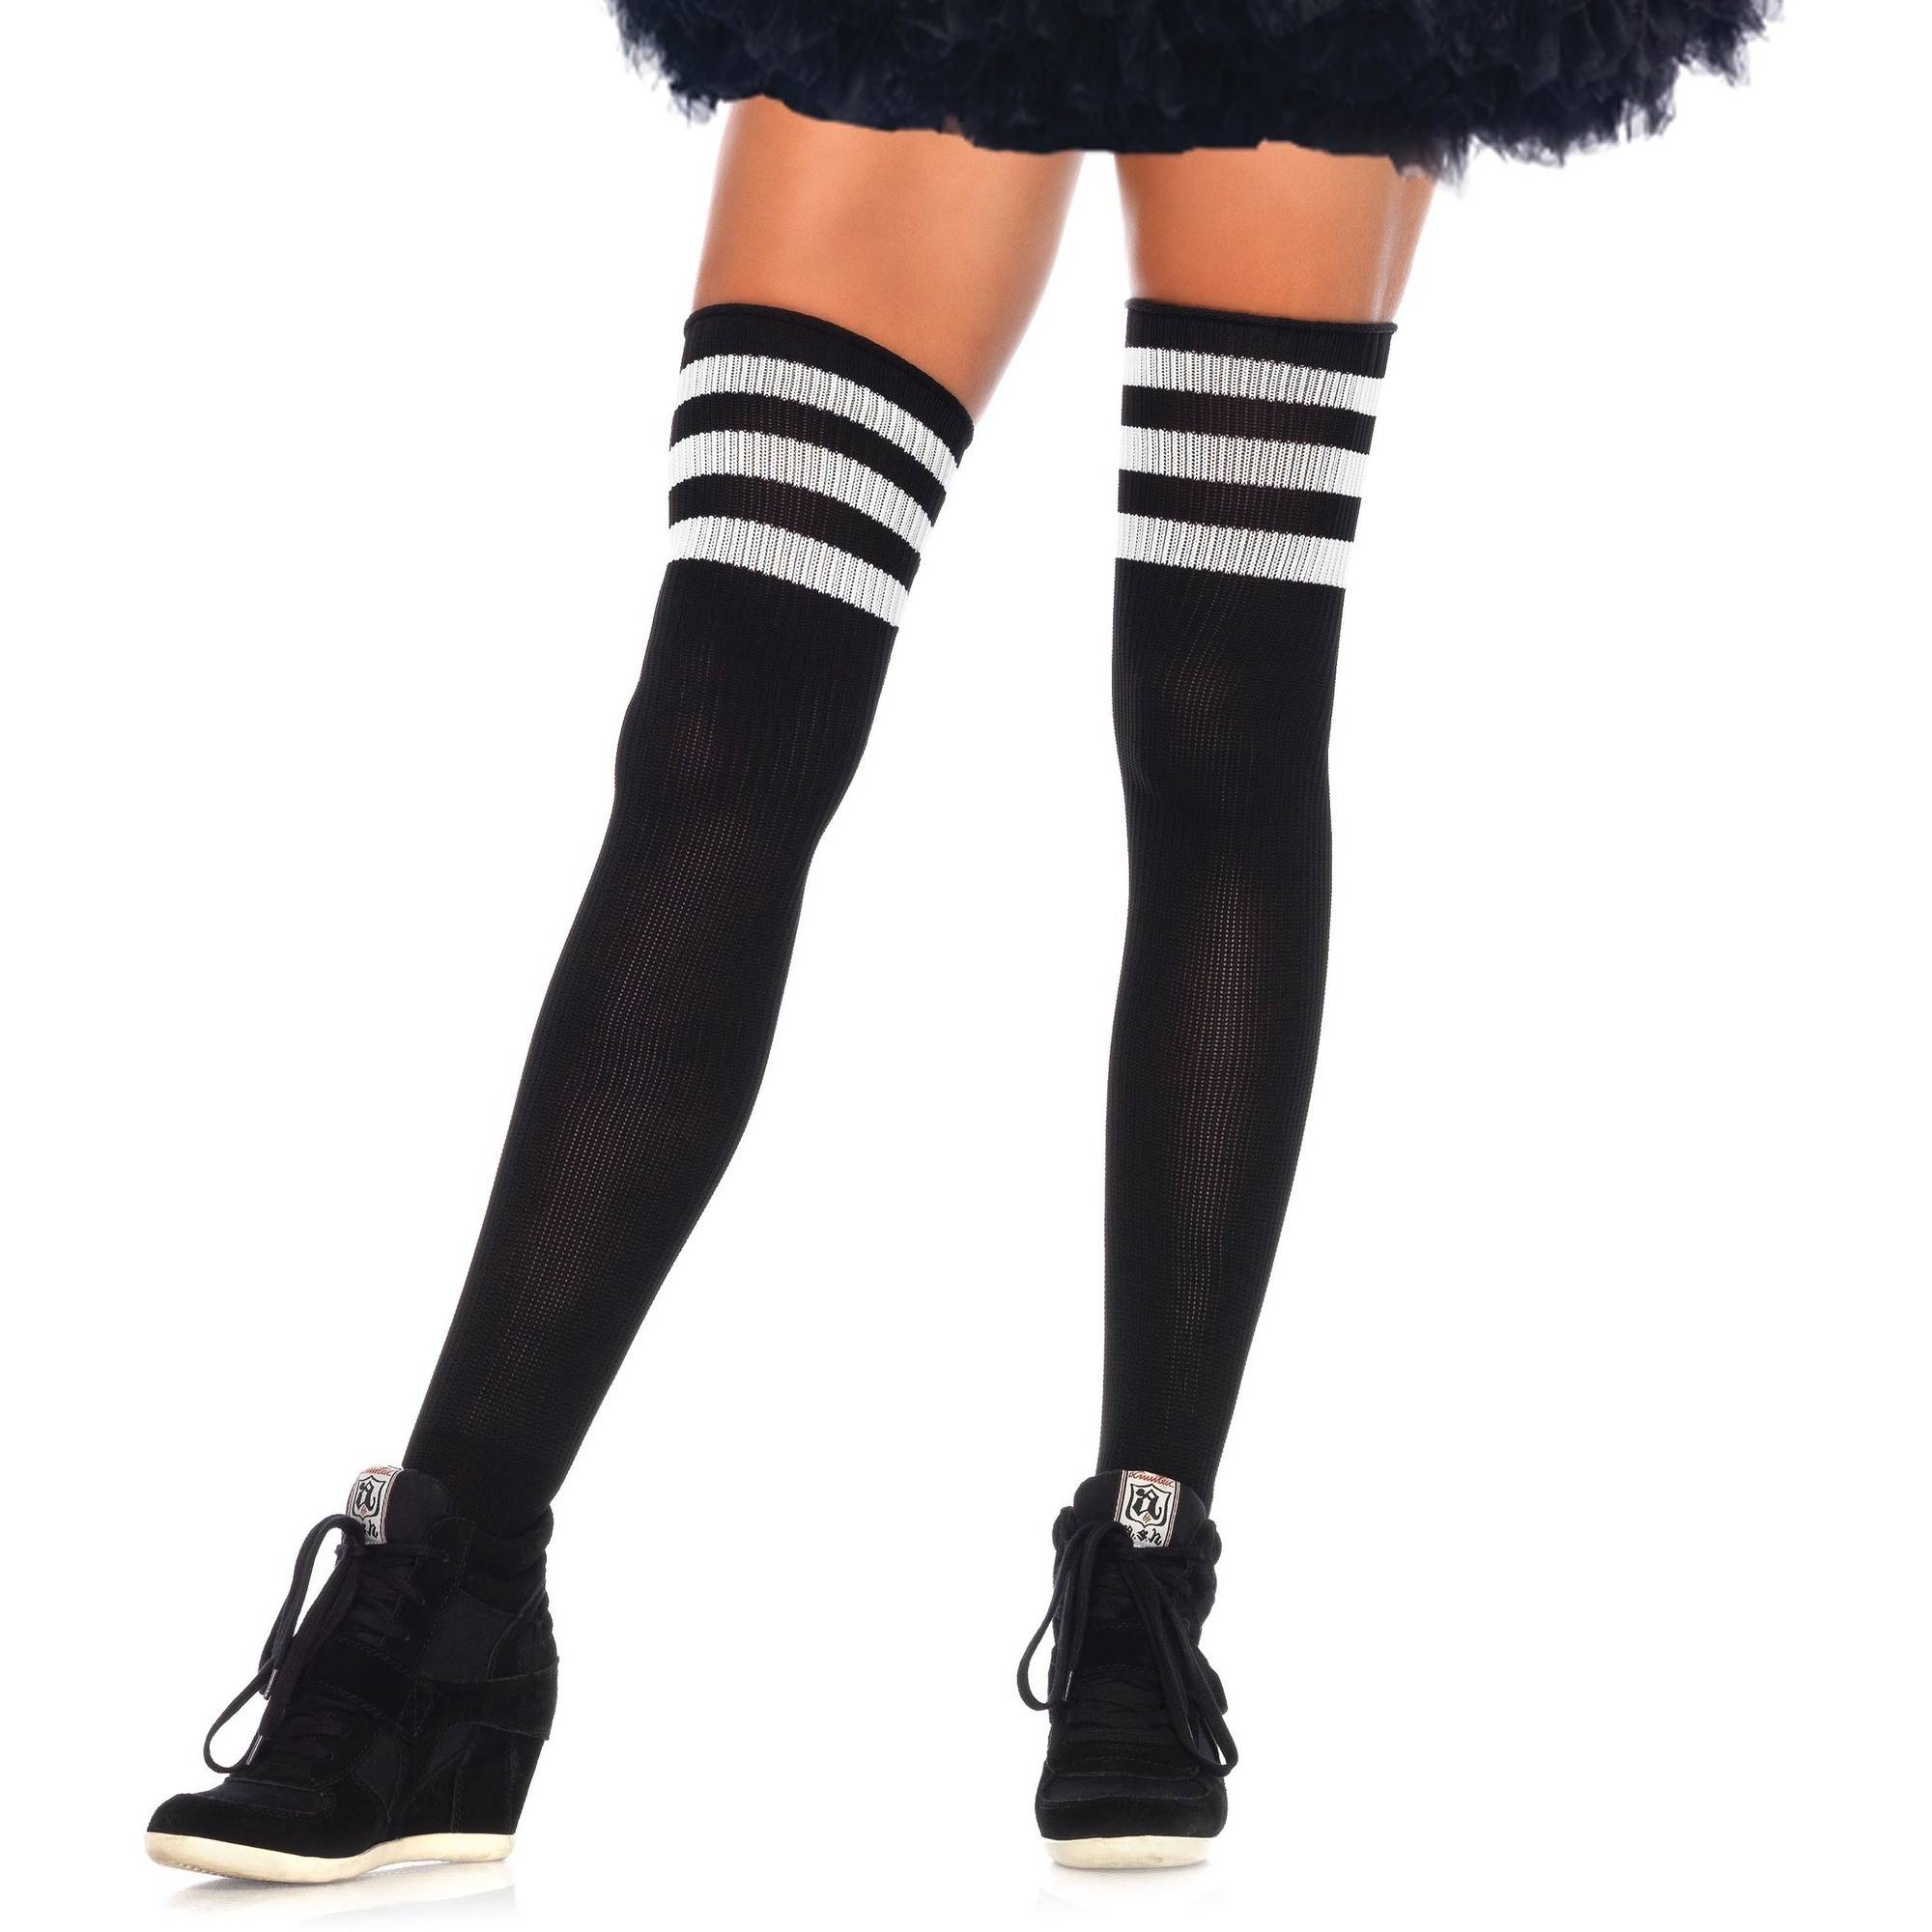 Athletic Thigh High Socks Halloween Costume Accessory  sc 1 st  Walmart & Athletic Thigh High Socks Halloween Costume Accessory - Walmart.com